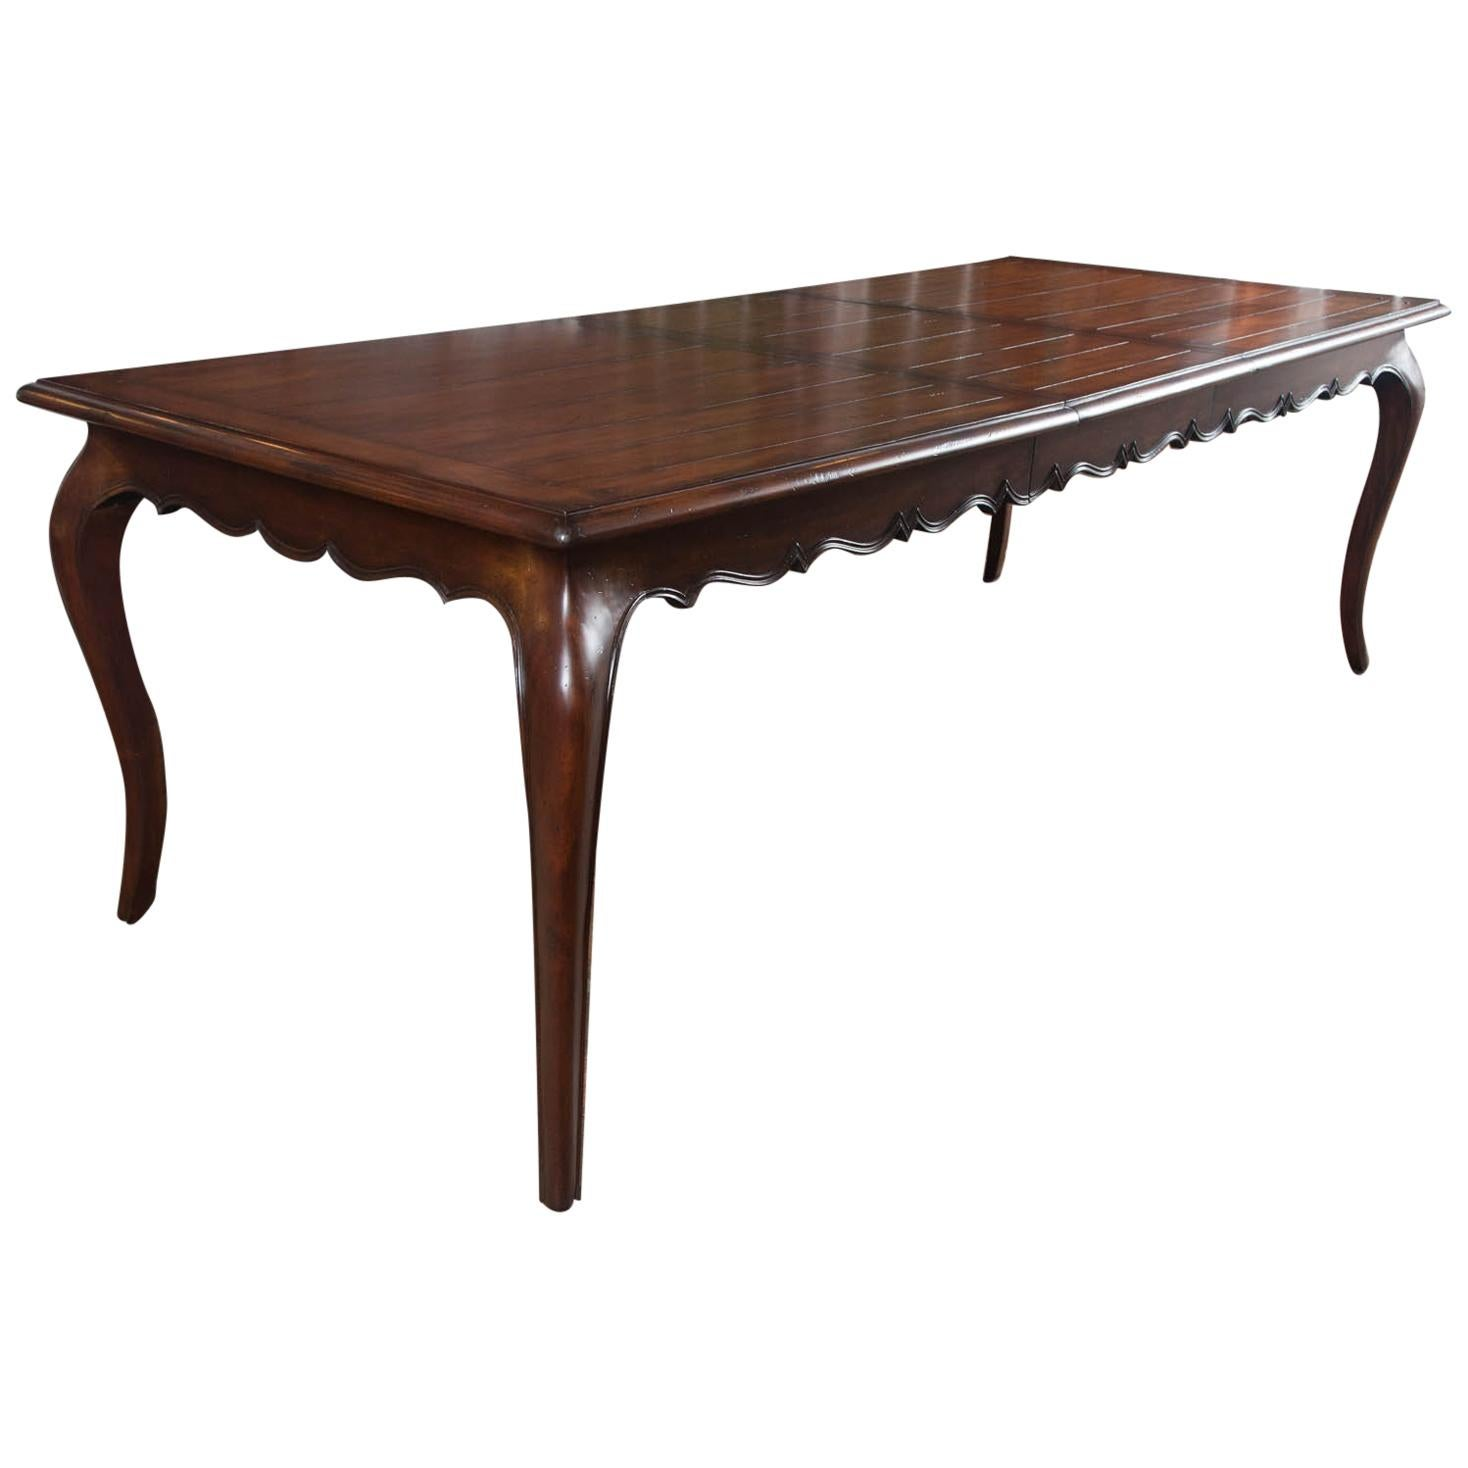 custom french cherry dining table with leaf for sale at 1stdibs rh 1stdibs com Round Dining Table Round Dining Tables with Leaves